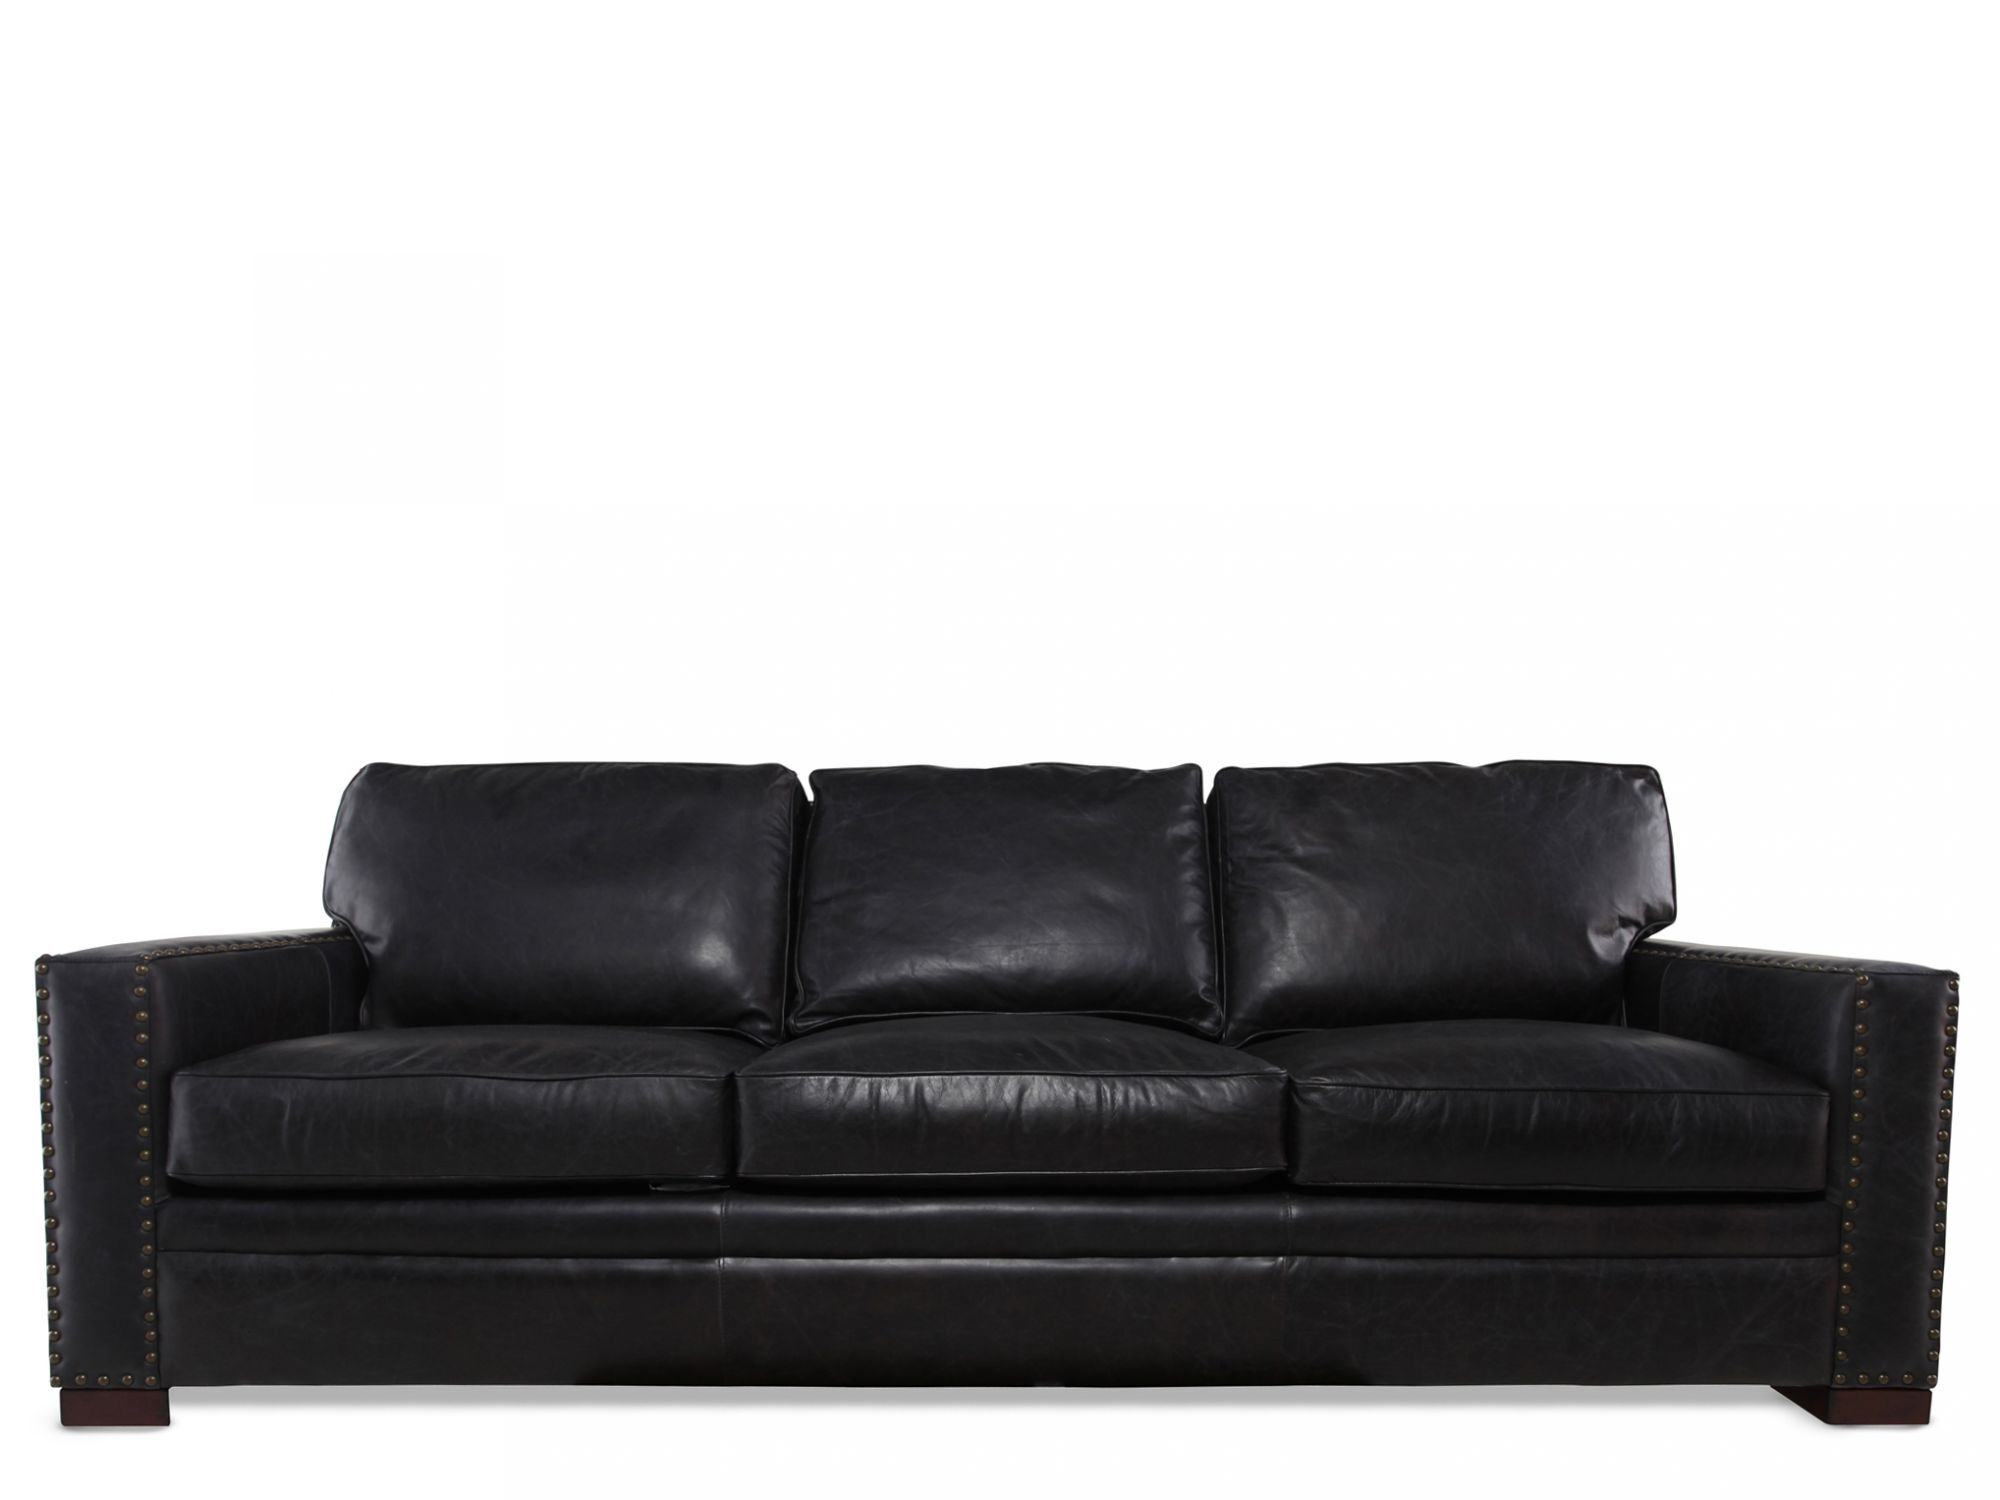 henredon sofa leather extra large chaise lounge mathis brothers